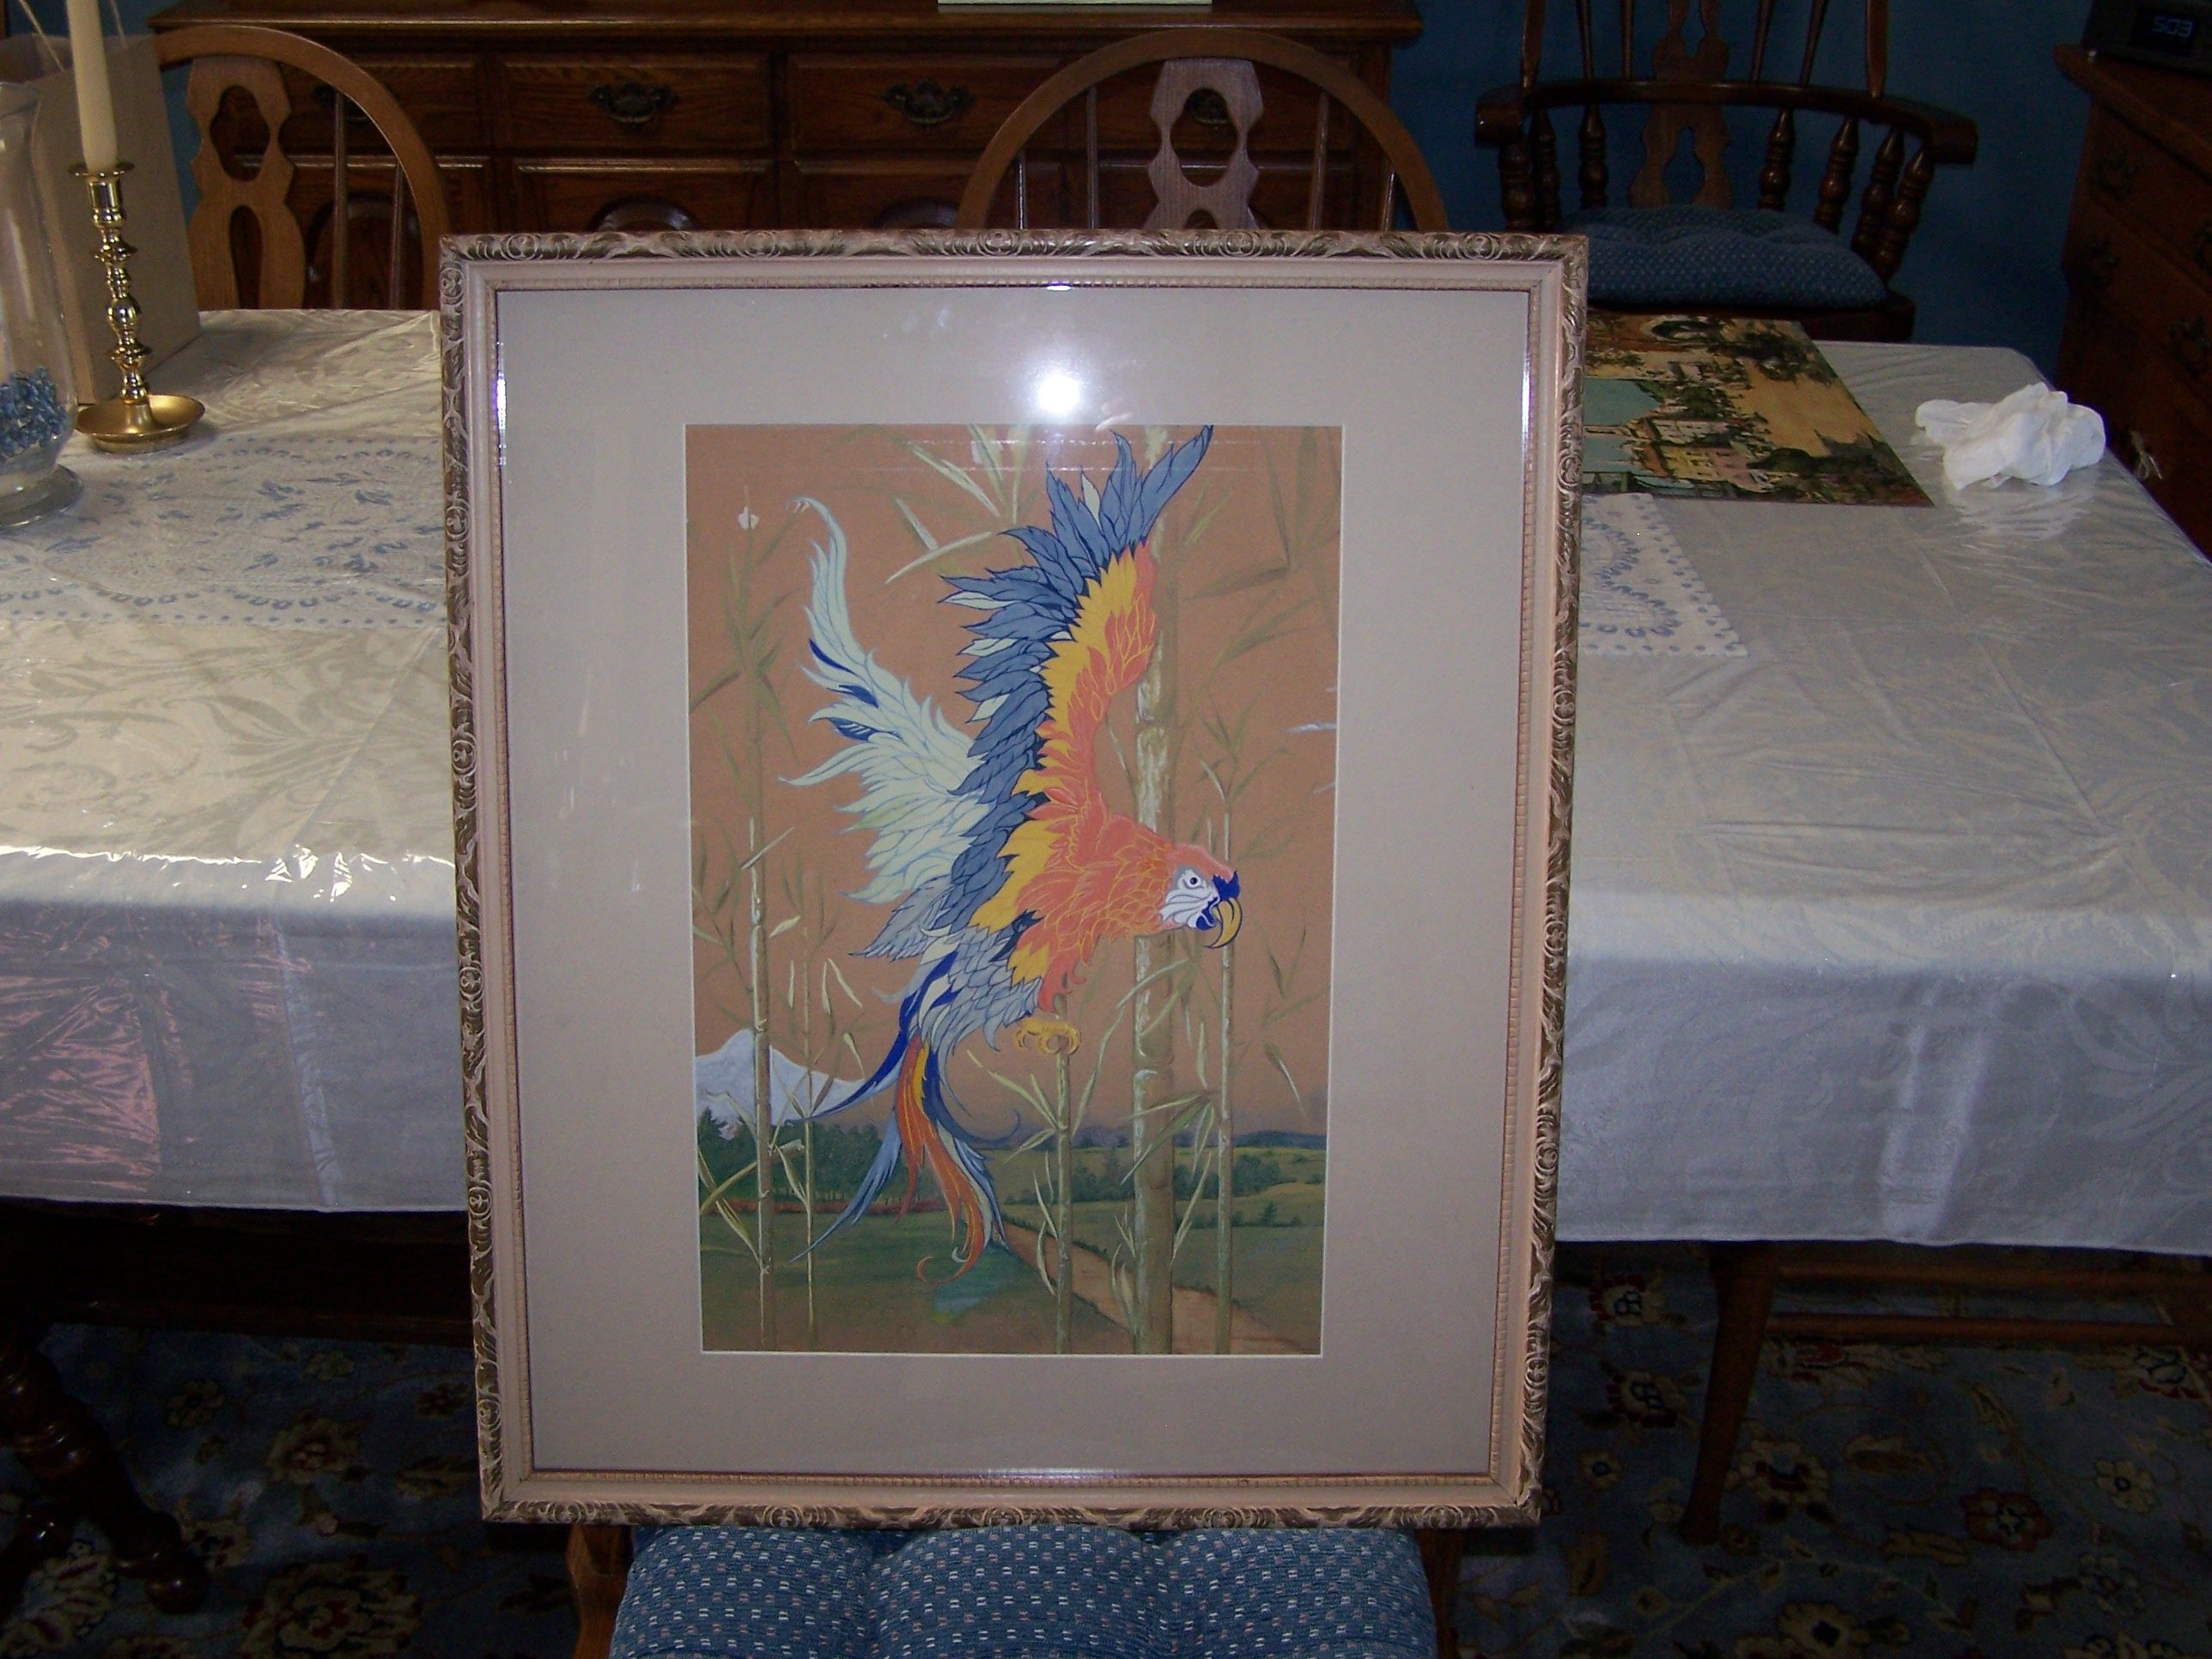 Don S Used Some New Matting To Freshen Up A Painting His Grandfather Made In 1938 It Looks Amazing Art Artwork Birds Nature Family Artwork Art Painting